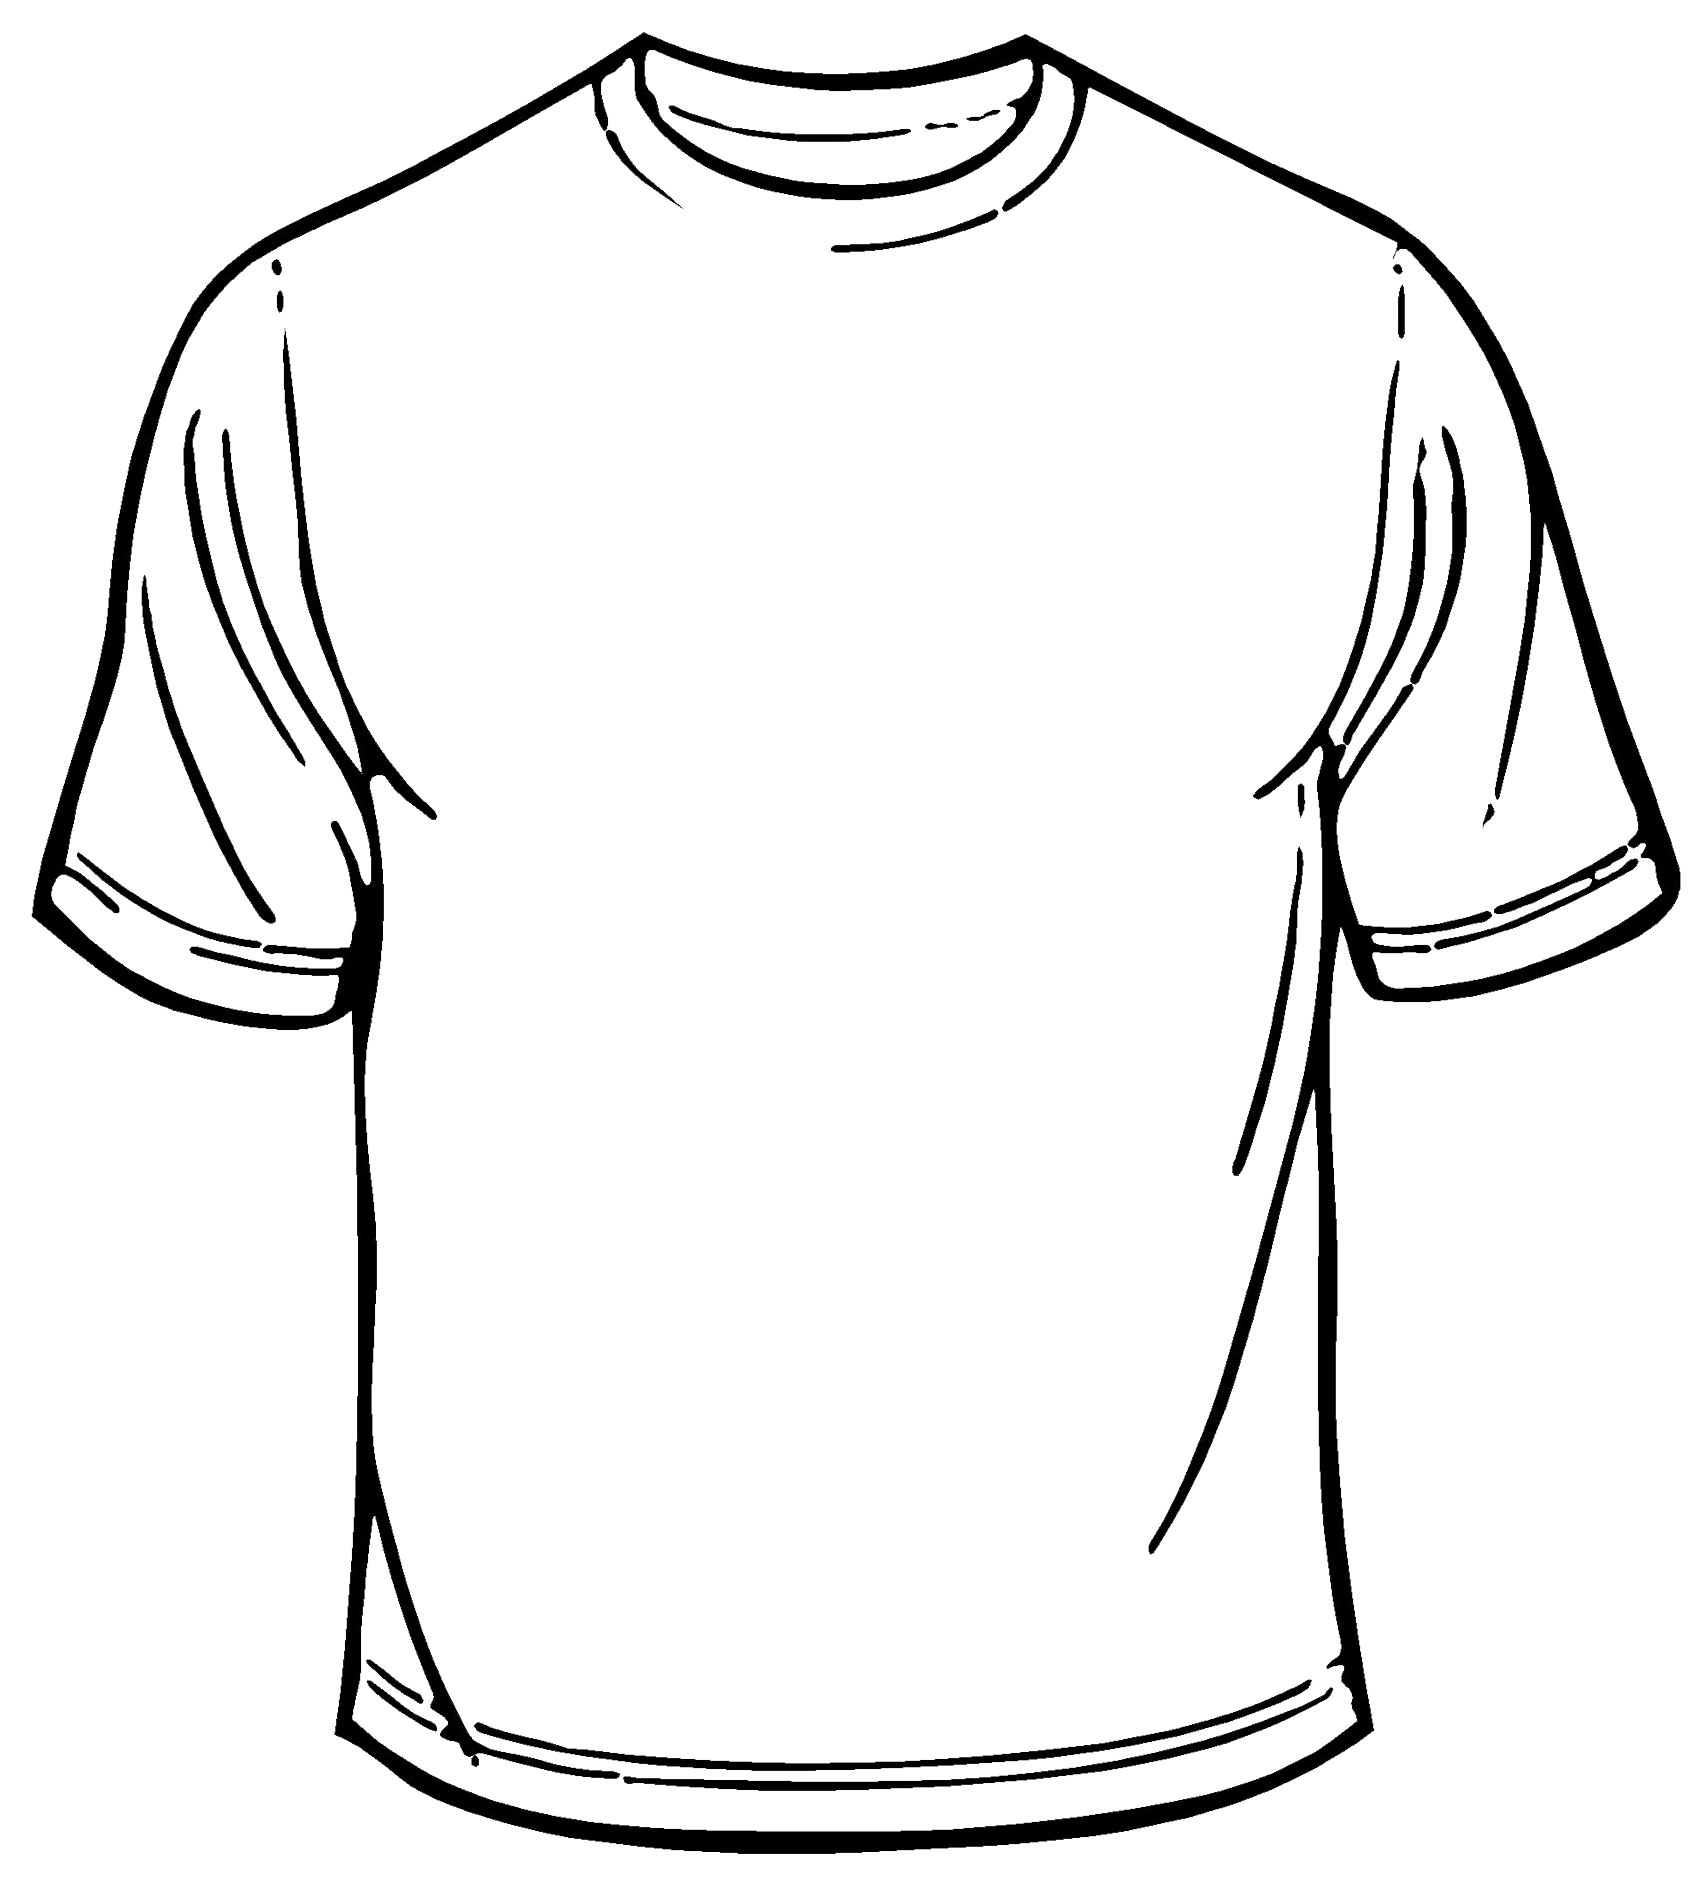 Blank Tshirt Template | Best Template Collection